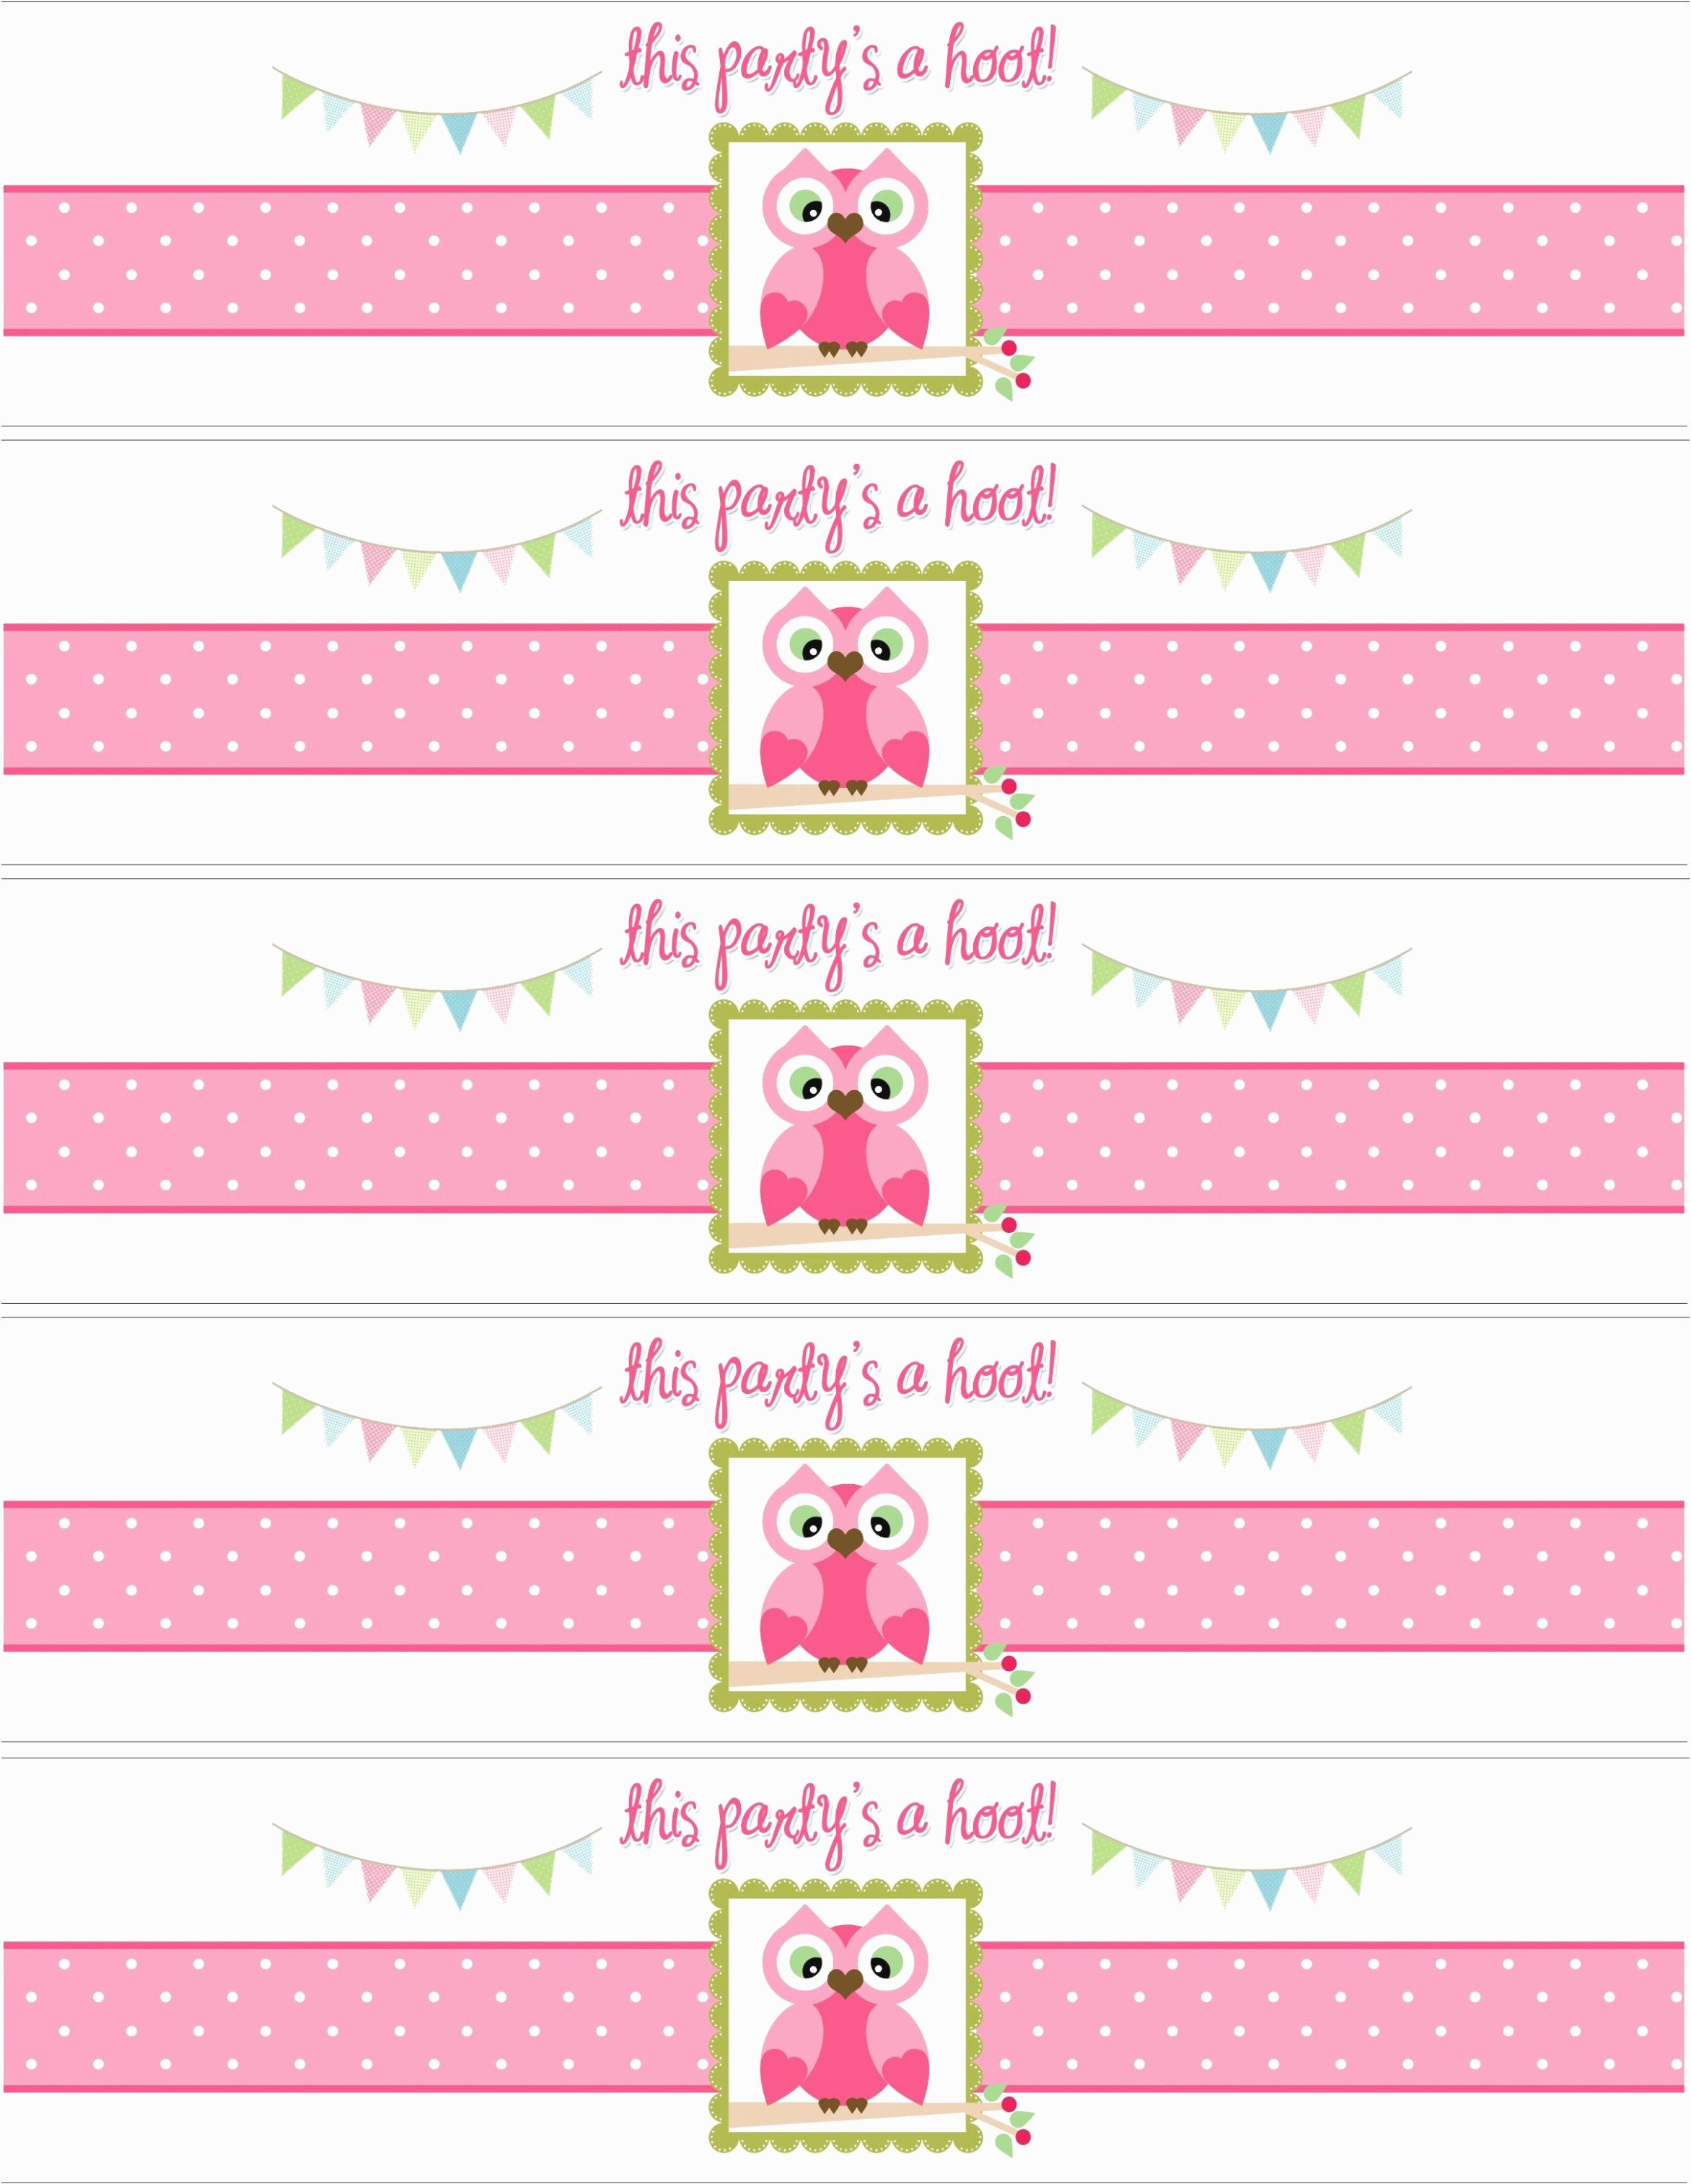 Free Editable Printable Labels Elegant Free Editable Printable Labels